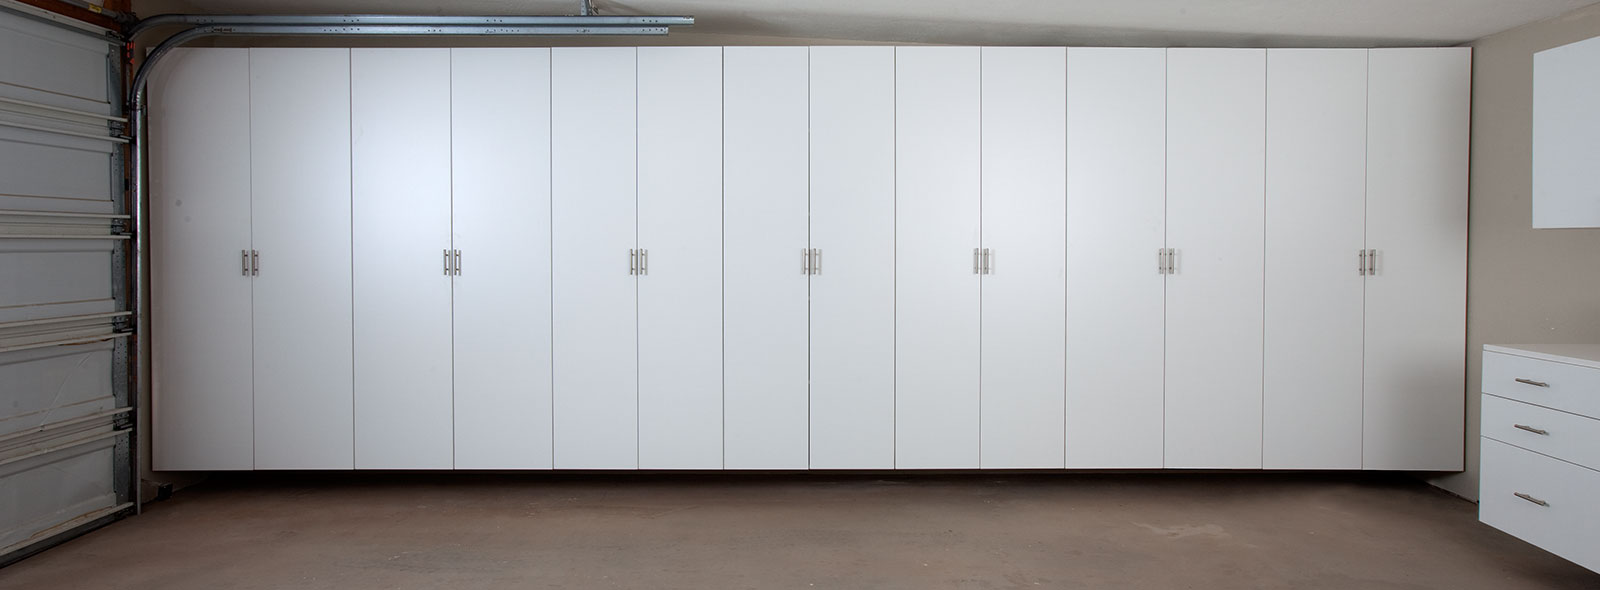 Matte Garage Cabinets  Silver Finish  White Finish